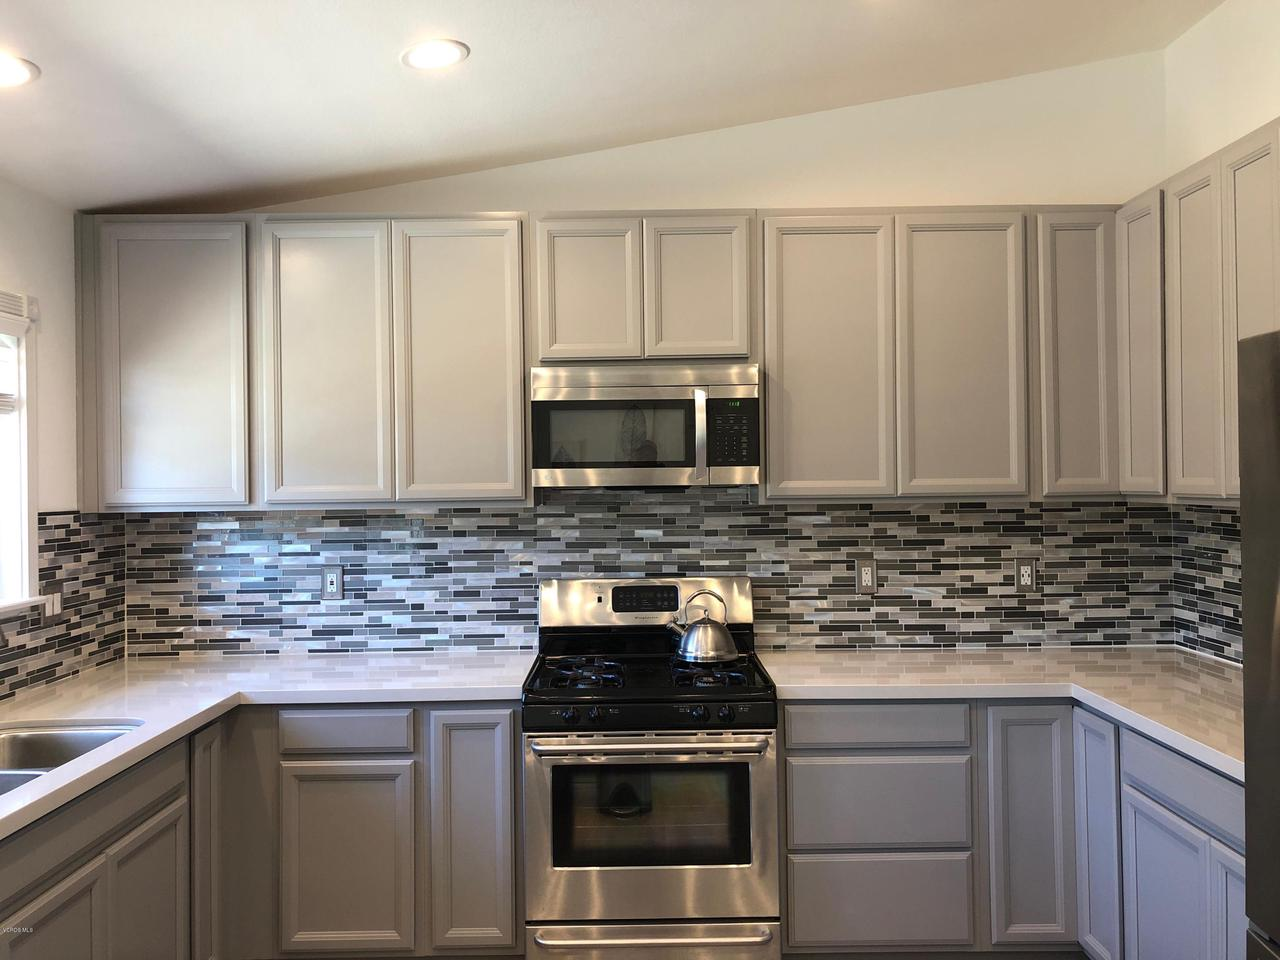 6489 DUKE, Moorpark, CA 93021 - C_Kitchen N 2